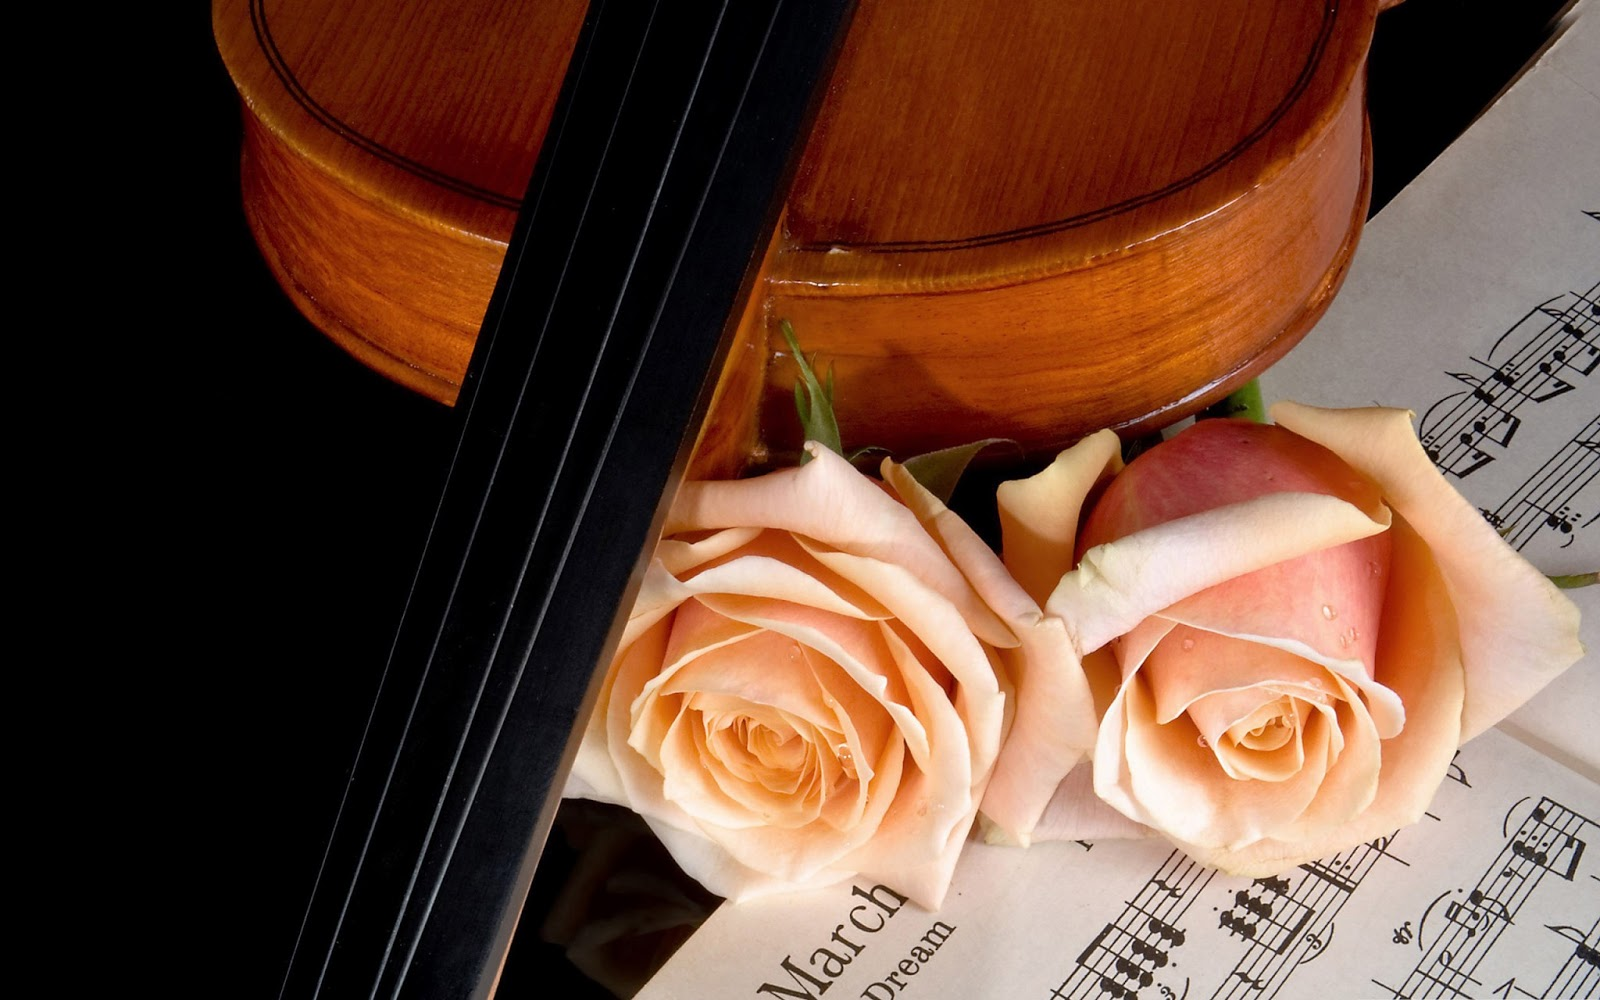 Violin Pictures Wallpapers 500 Collection Hd Wallpaper